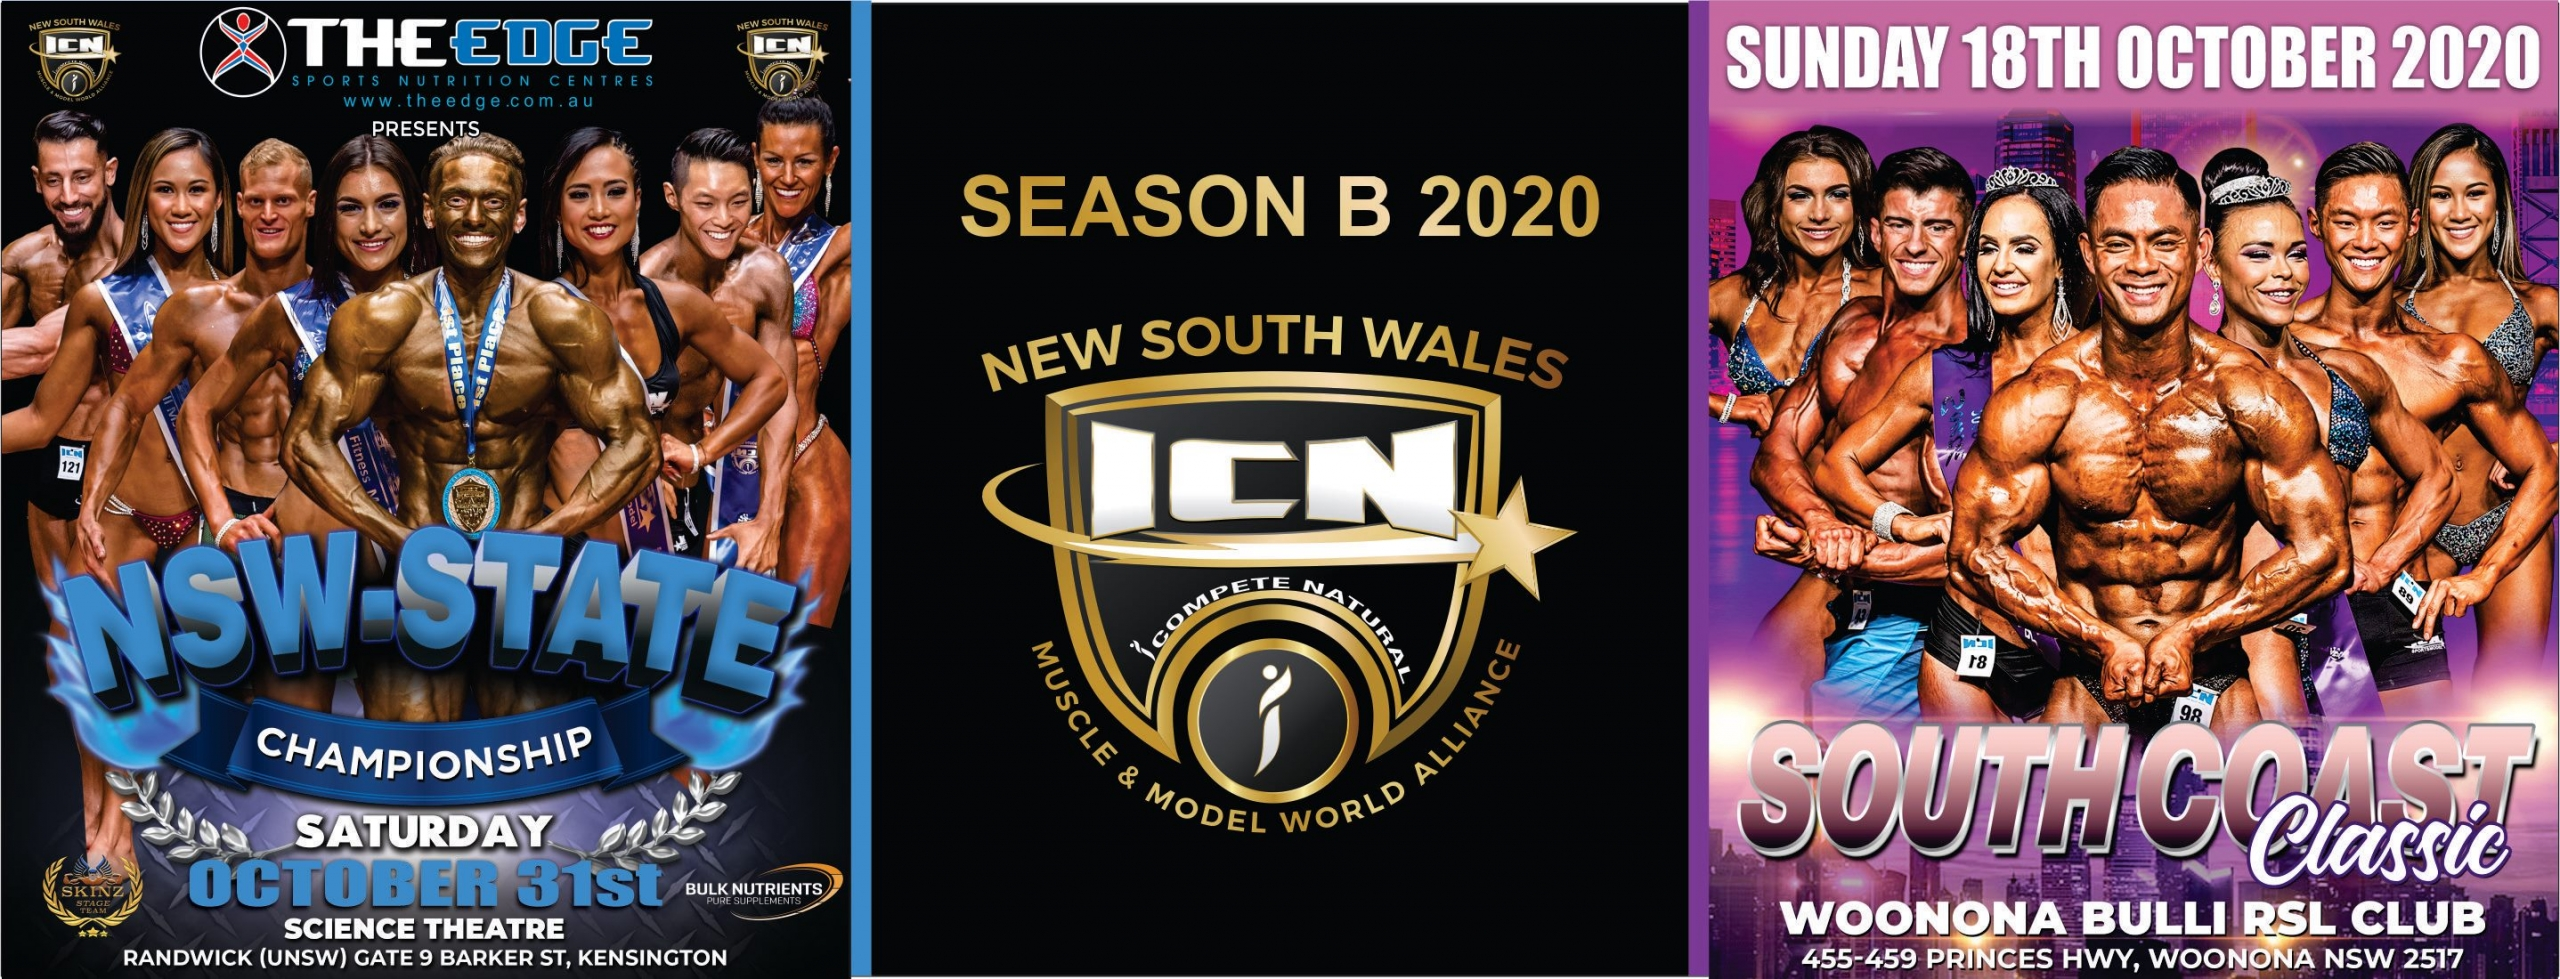 icn nsw 2020 season b